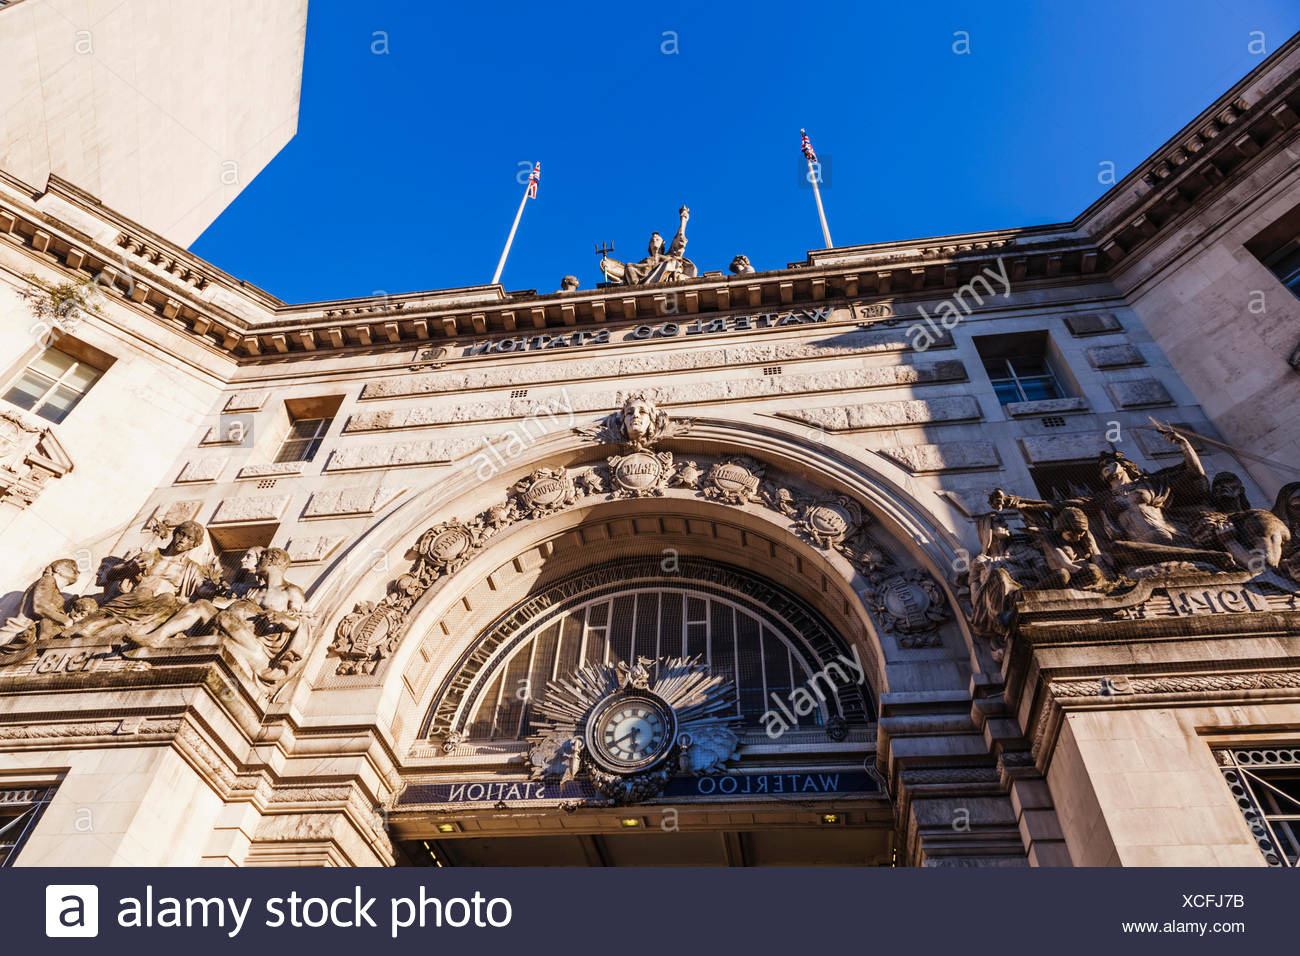 England, London, Waterloo Station, Main Entrance - Stock Image